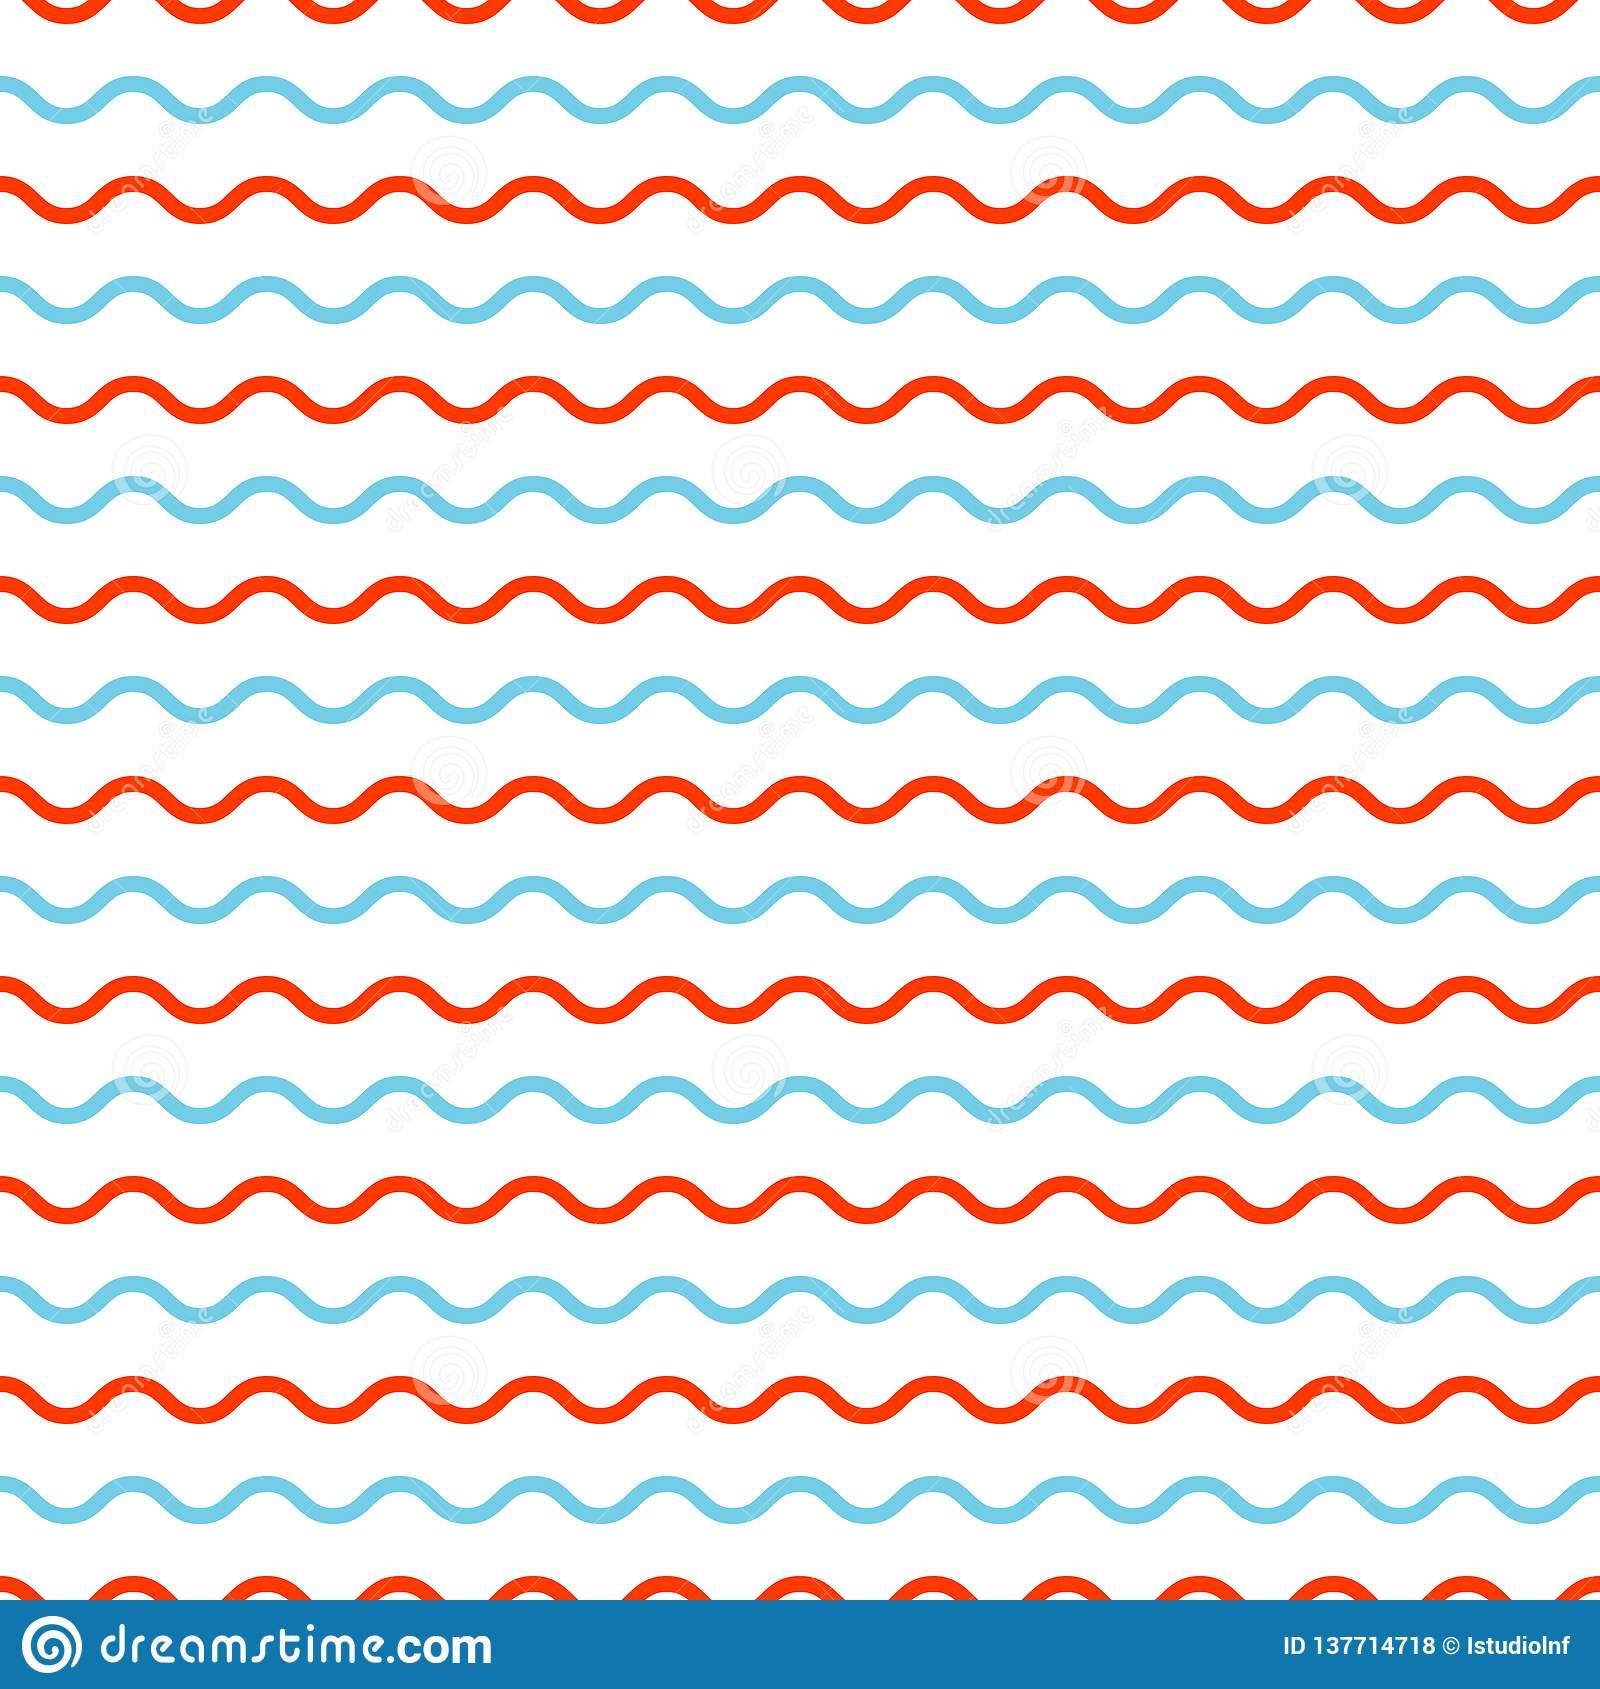 Waves pattern. Geometric simple background